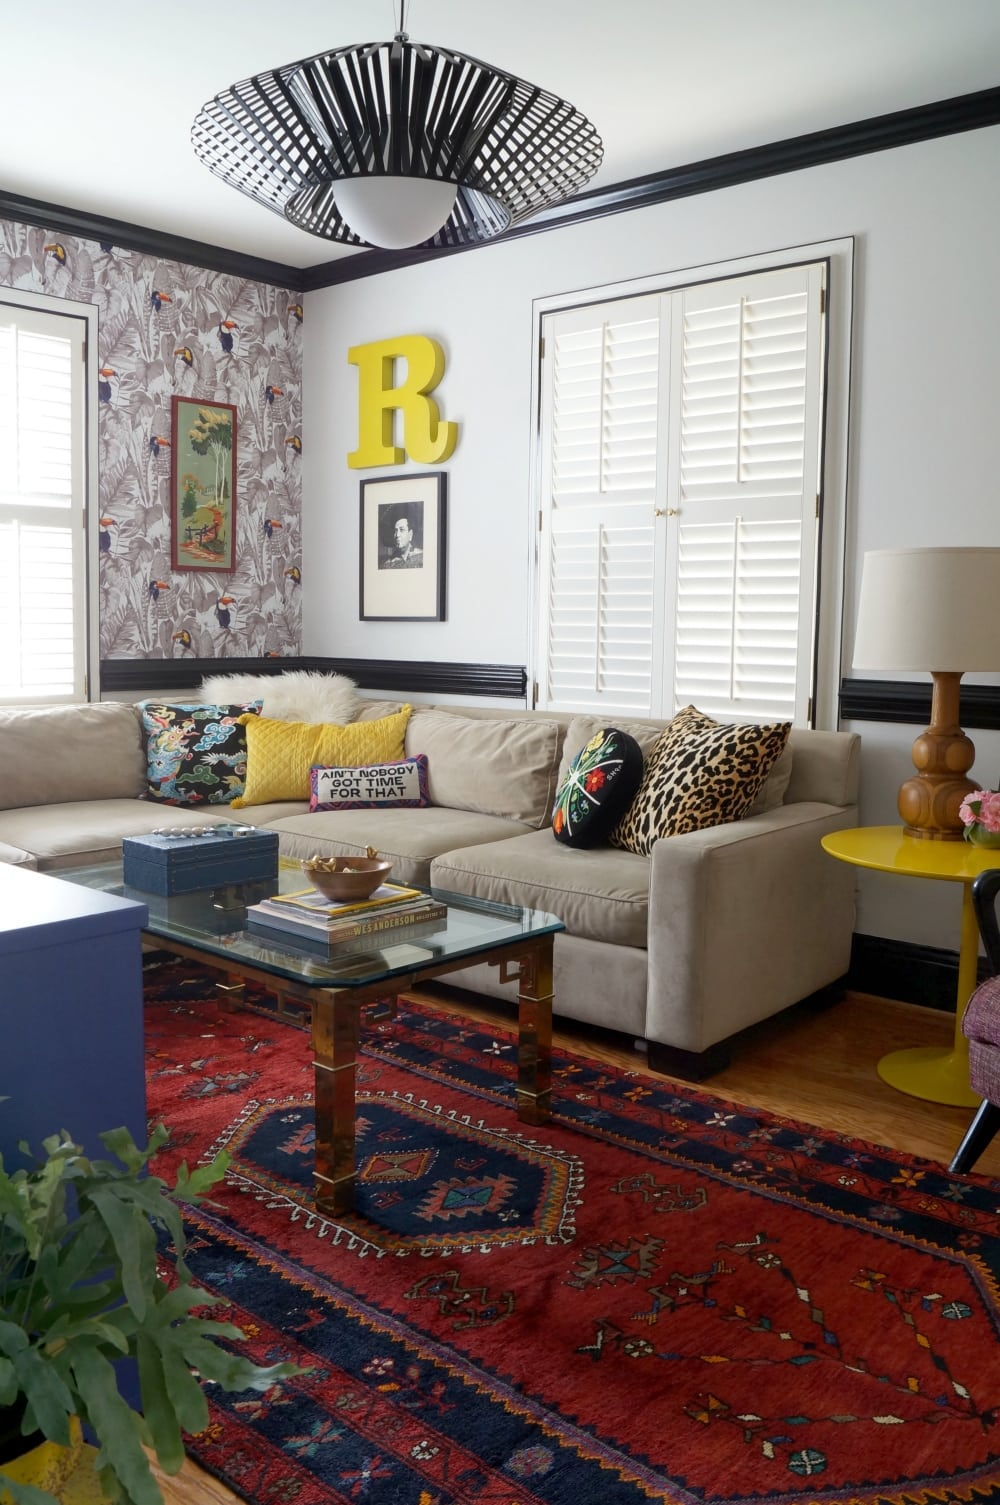 Eclectic-colorful-collection-mid-century-furiture-living-room-colorful-removable-wallpaper-toucan-mixing-pattern-persian-rug